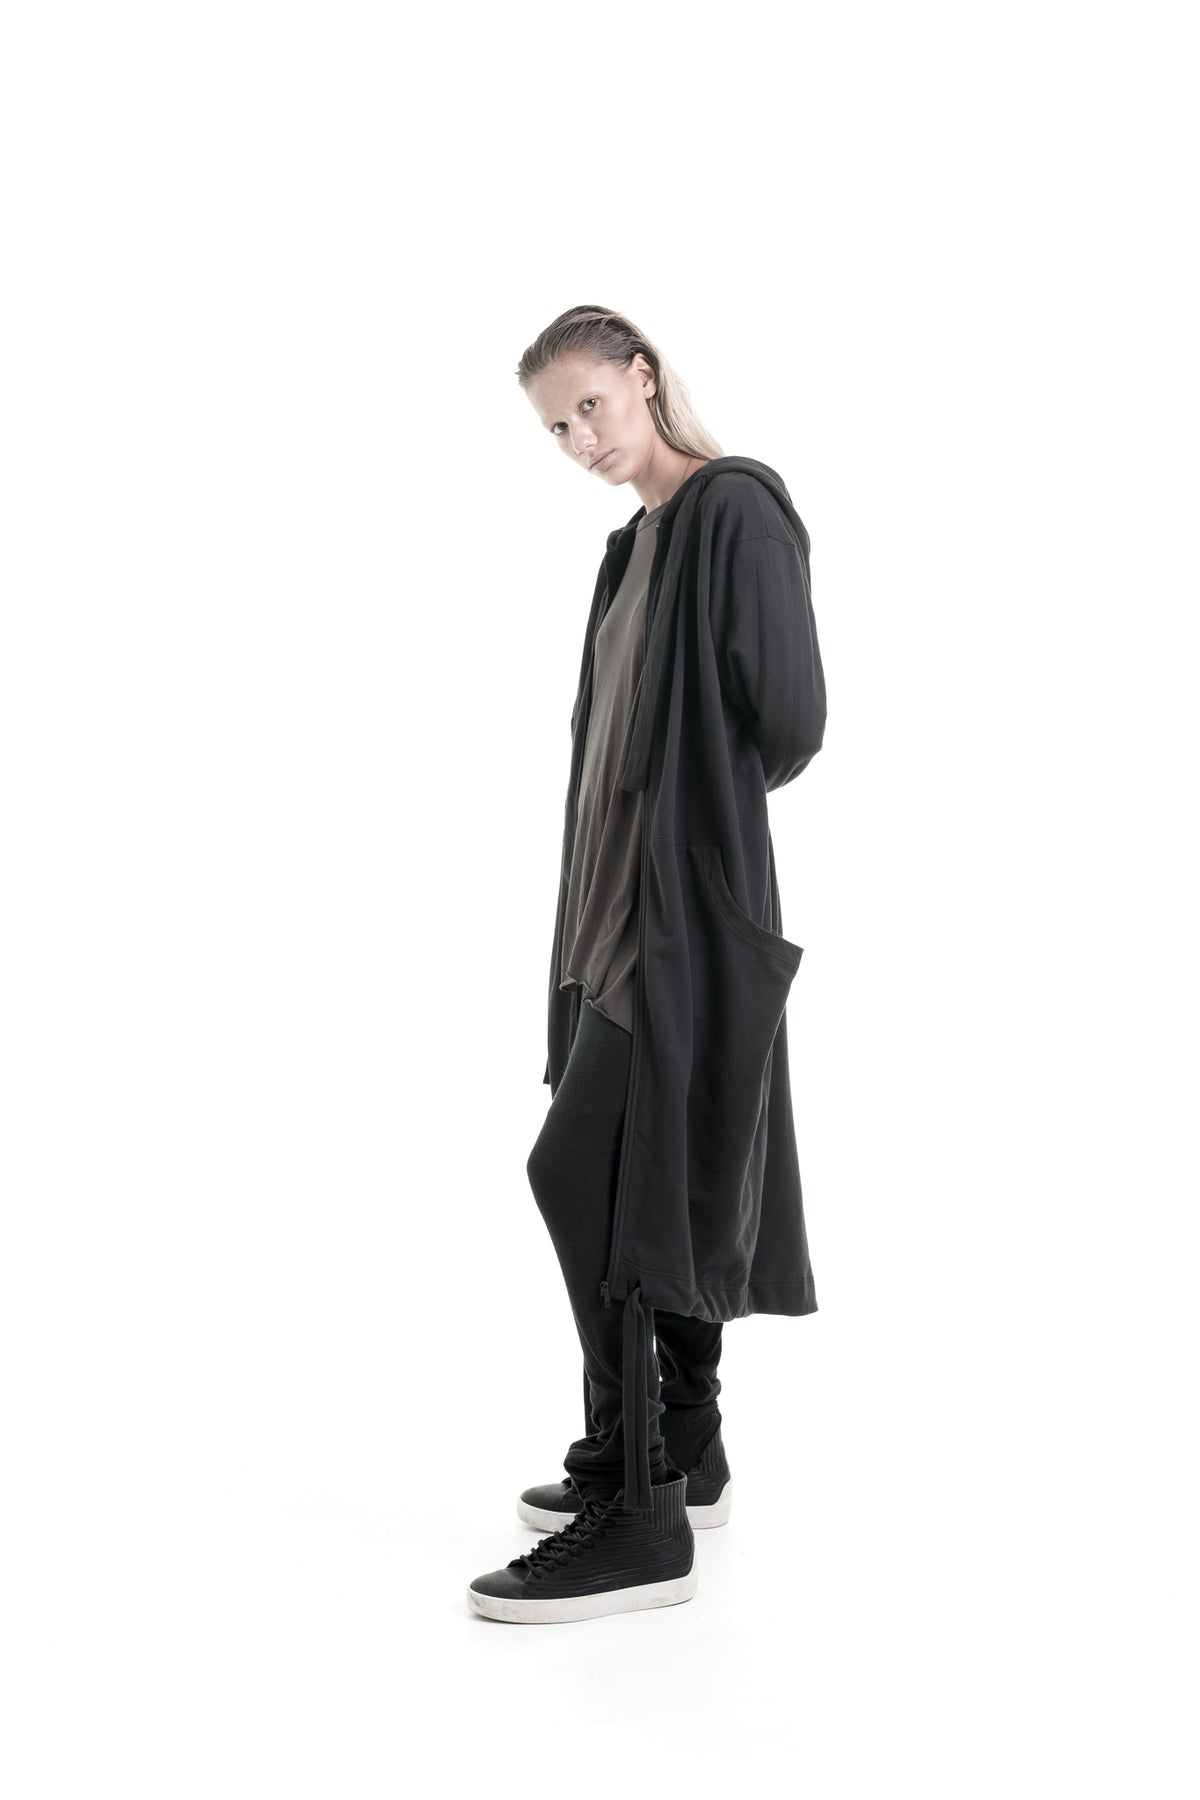 Nordic design, scandinavian design, danish design, black cotton, cotton jacket, long jacket, jerdey jacket, luxury cotton jacket, cotton, fine black cotton, oversize cotton jacket, oversize